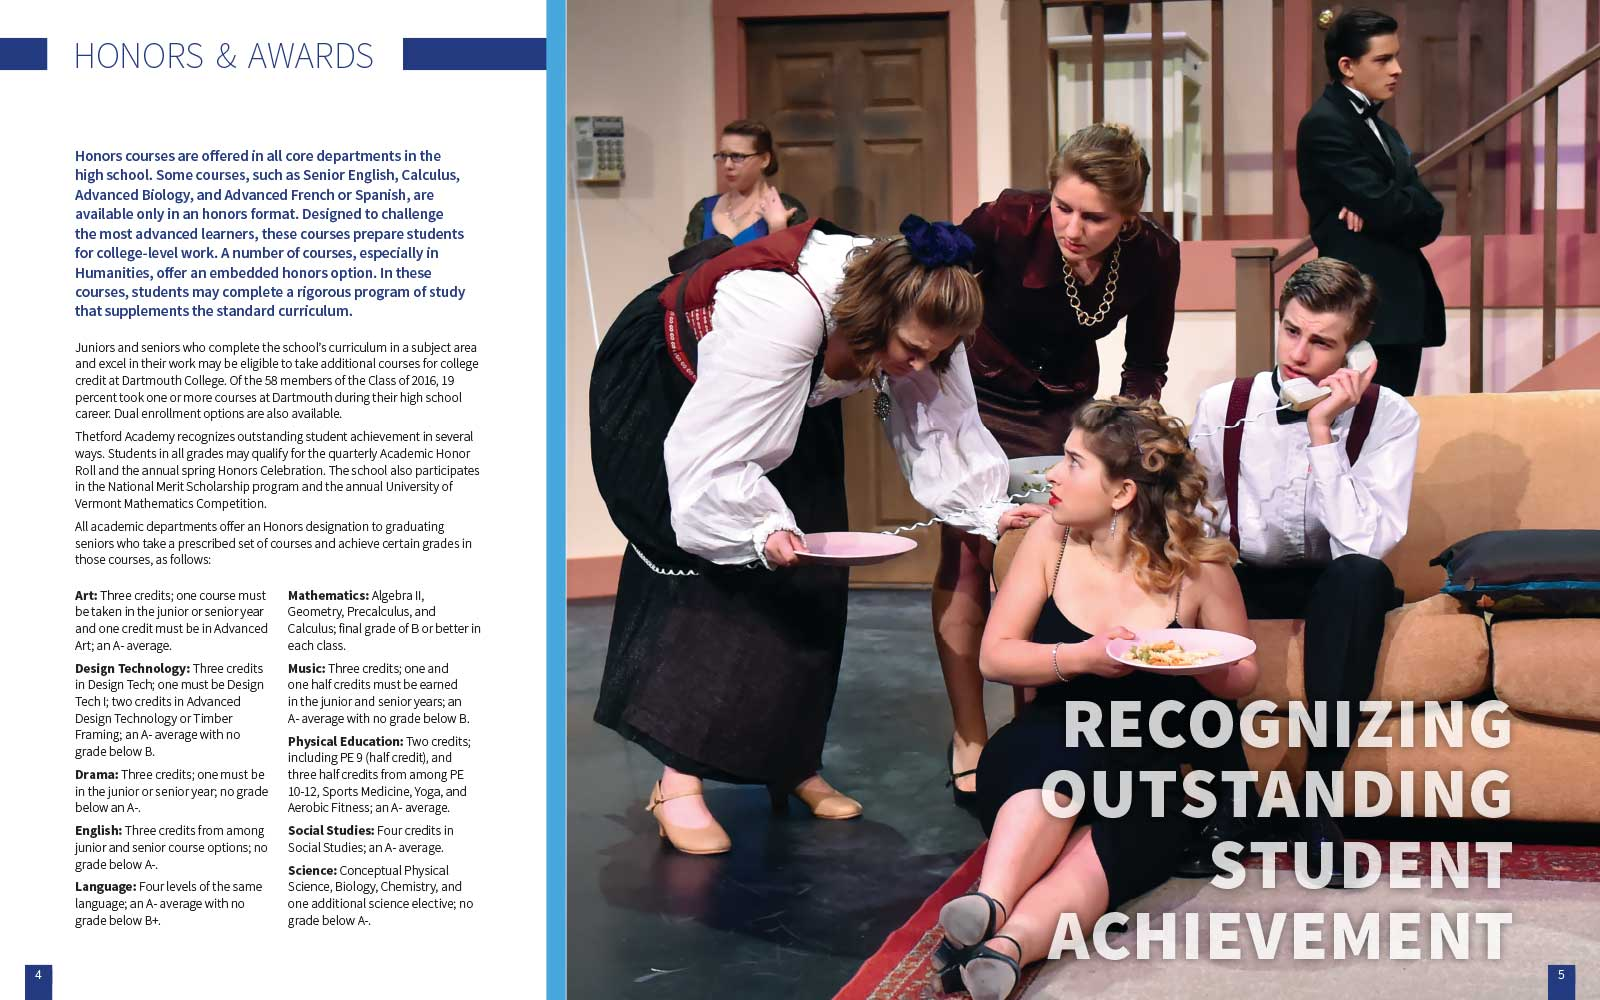 six students acting in a play on stage looking surprised about the ongoing drama next to copy promoting Thetford Academy